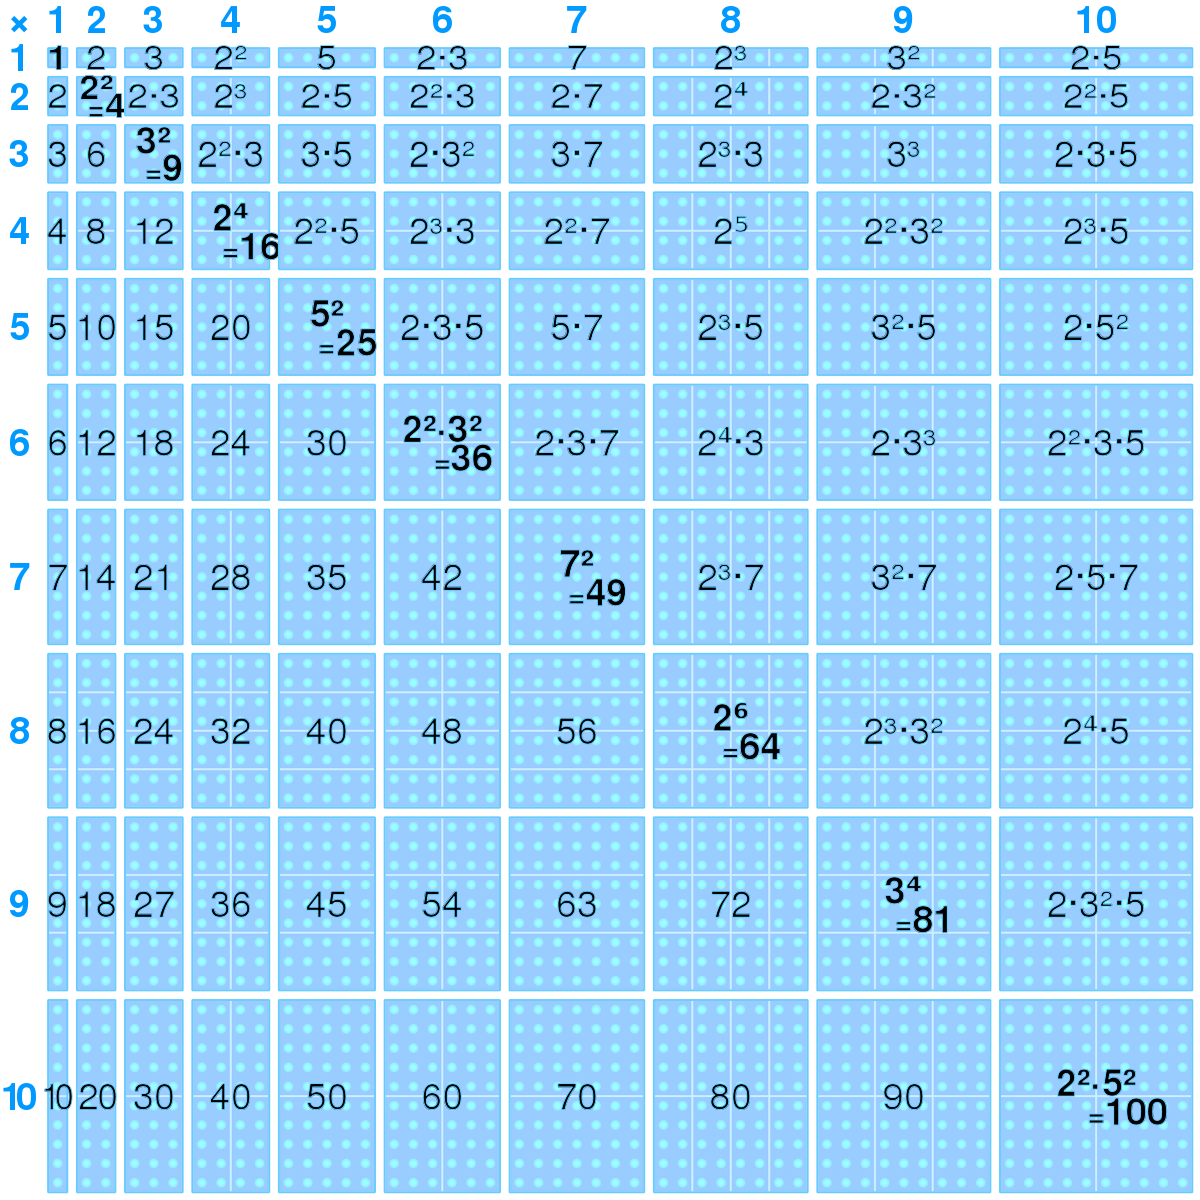 Multiplication Table - Wikipedia